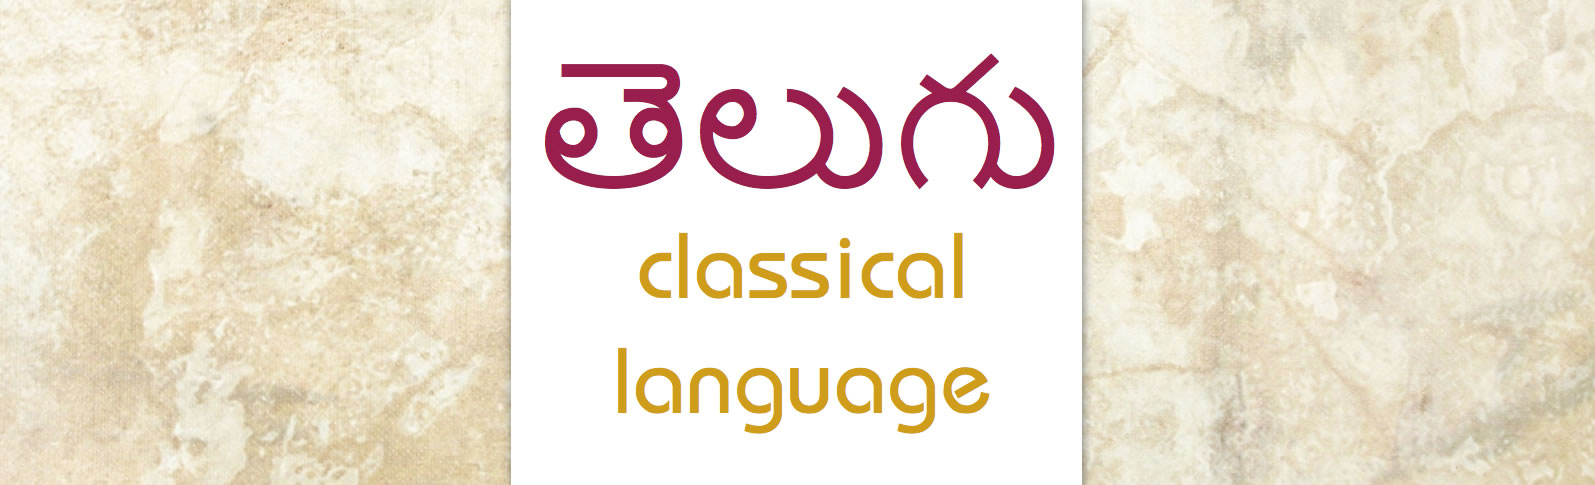 Teluguclassical language